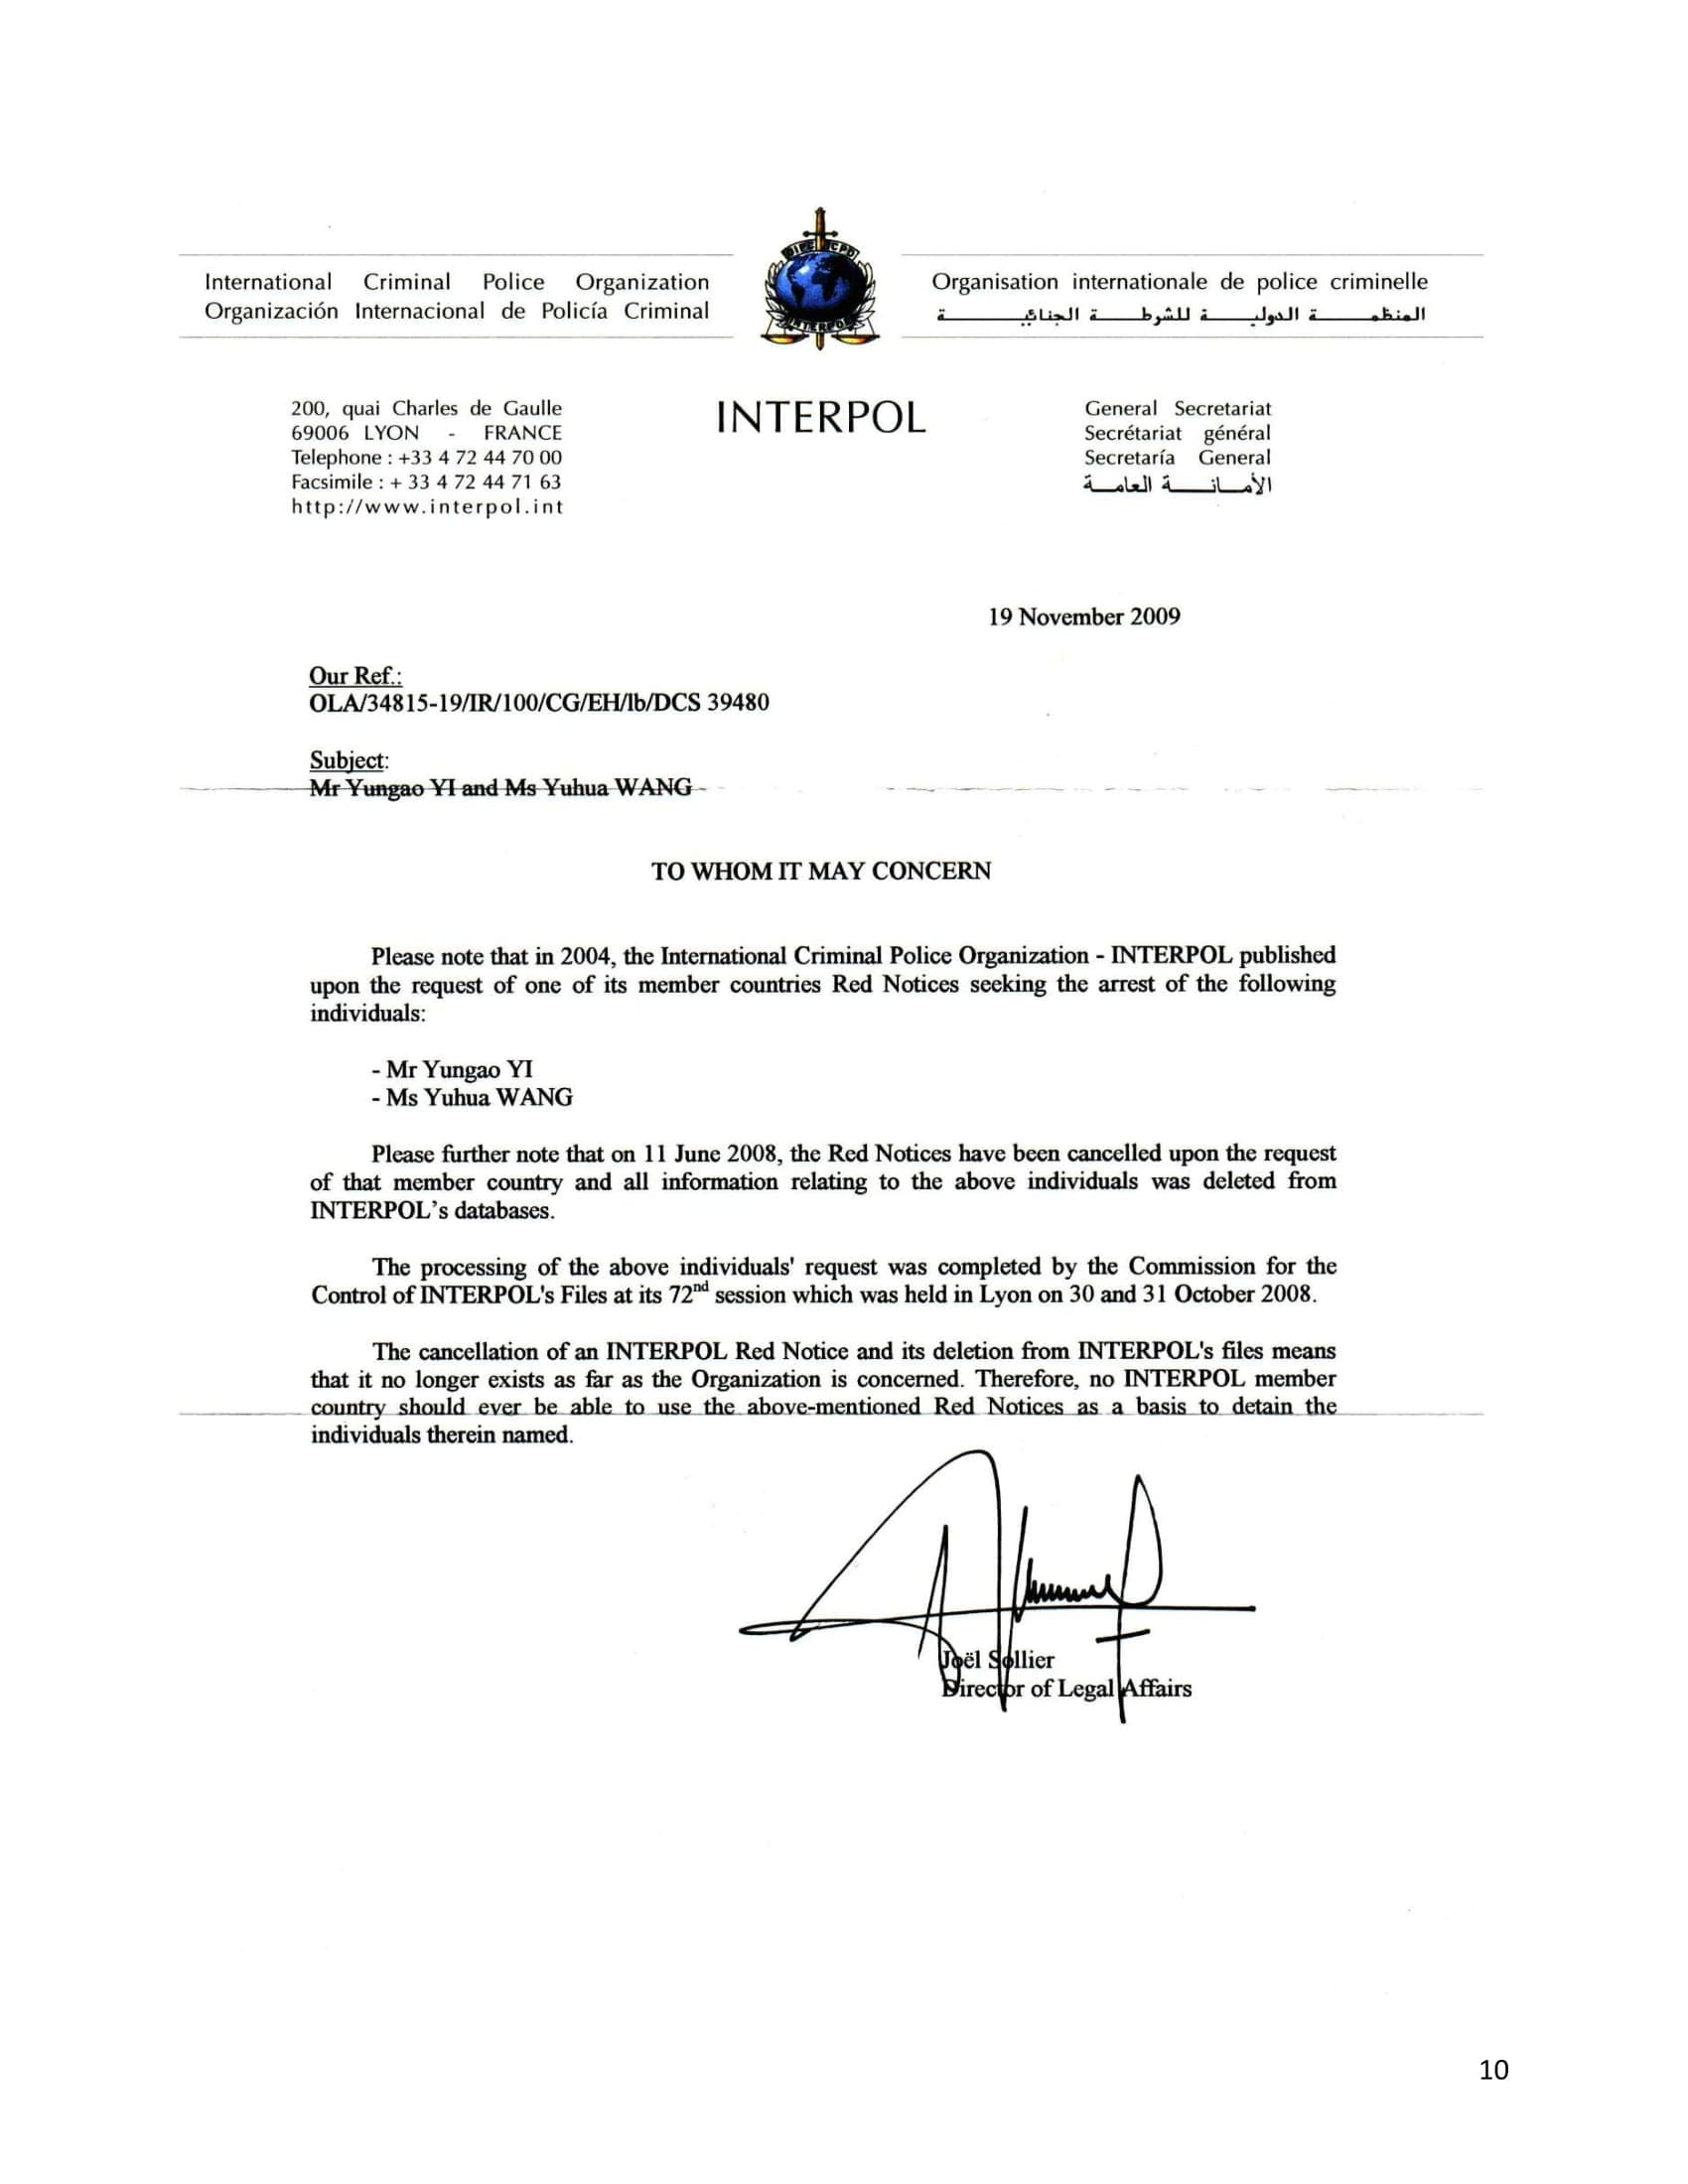 letter from INTERPOL